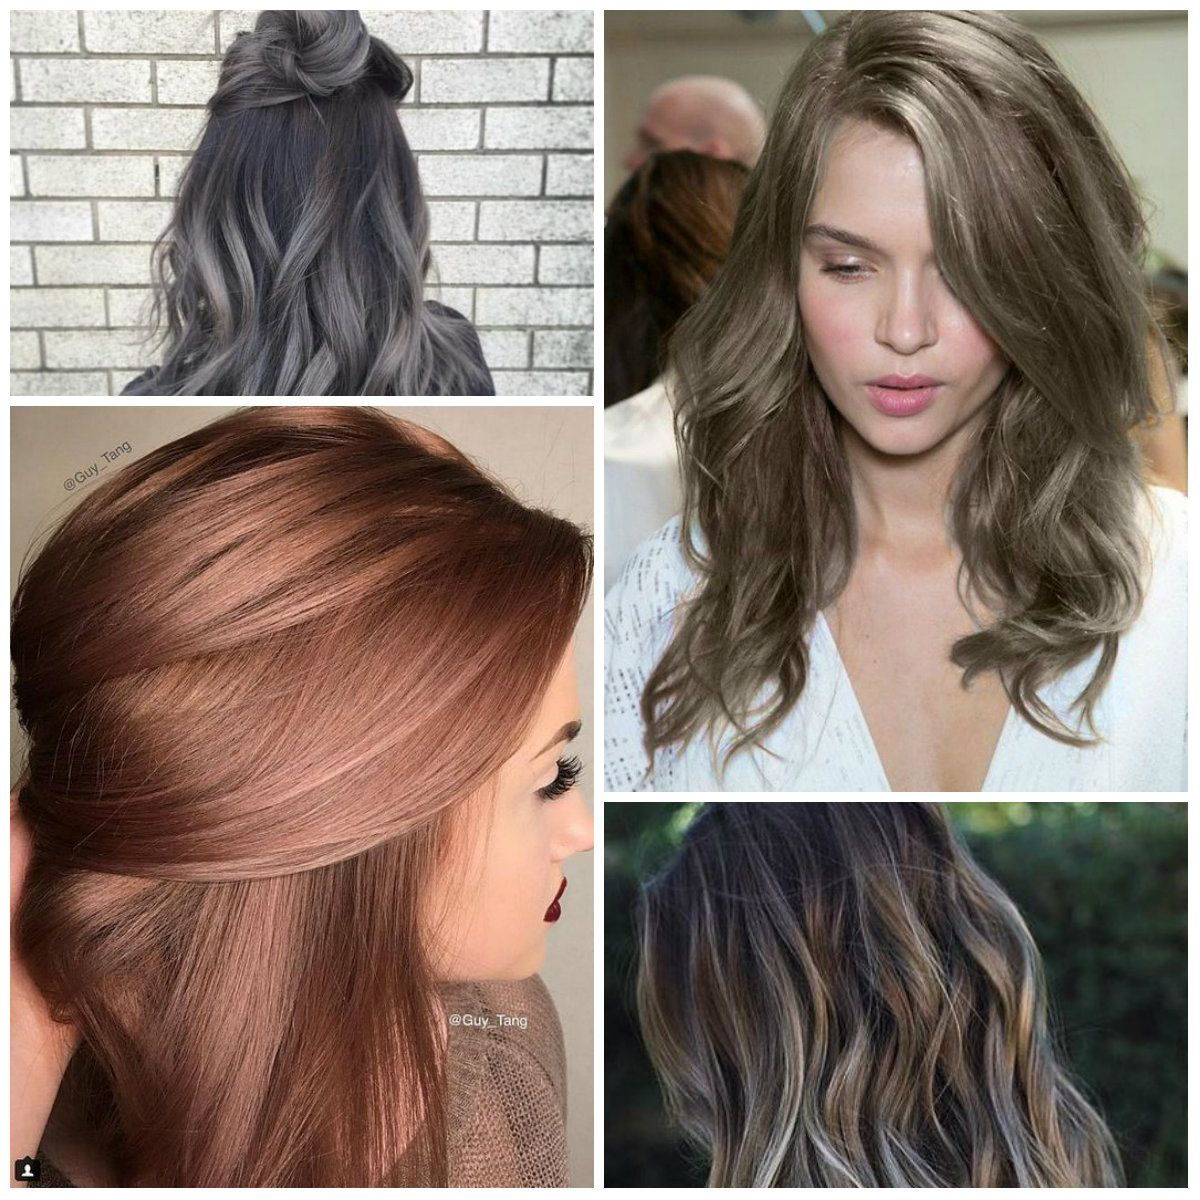 Images about hair colors and styles on pinterest - New Hair Color Ideas Trends For 2017